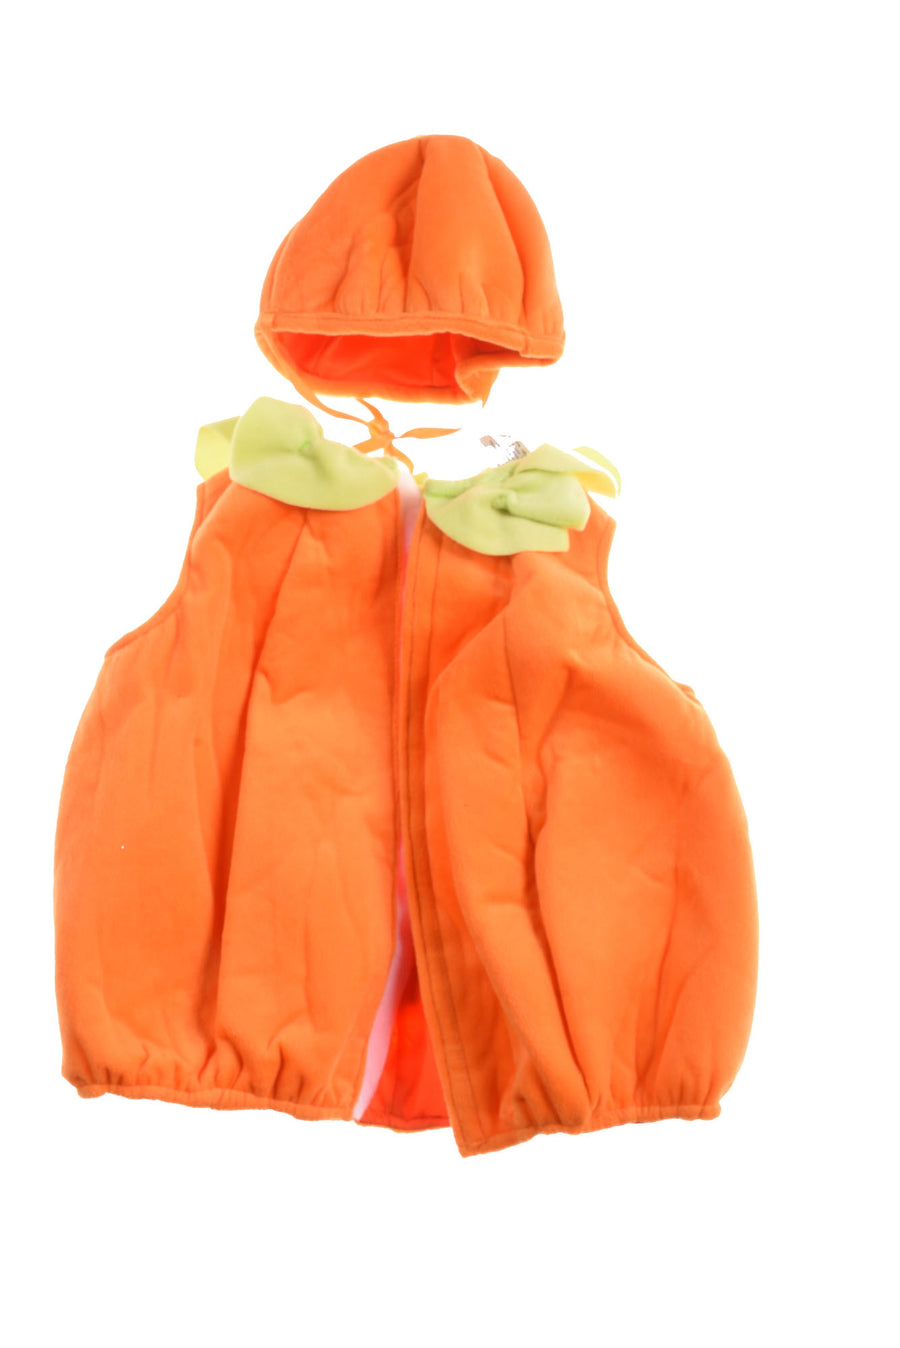 USED Fun World Baby Pumpkin Halloween Costume 12-24 Months Orange